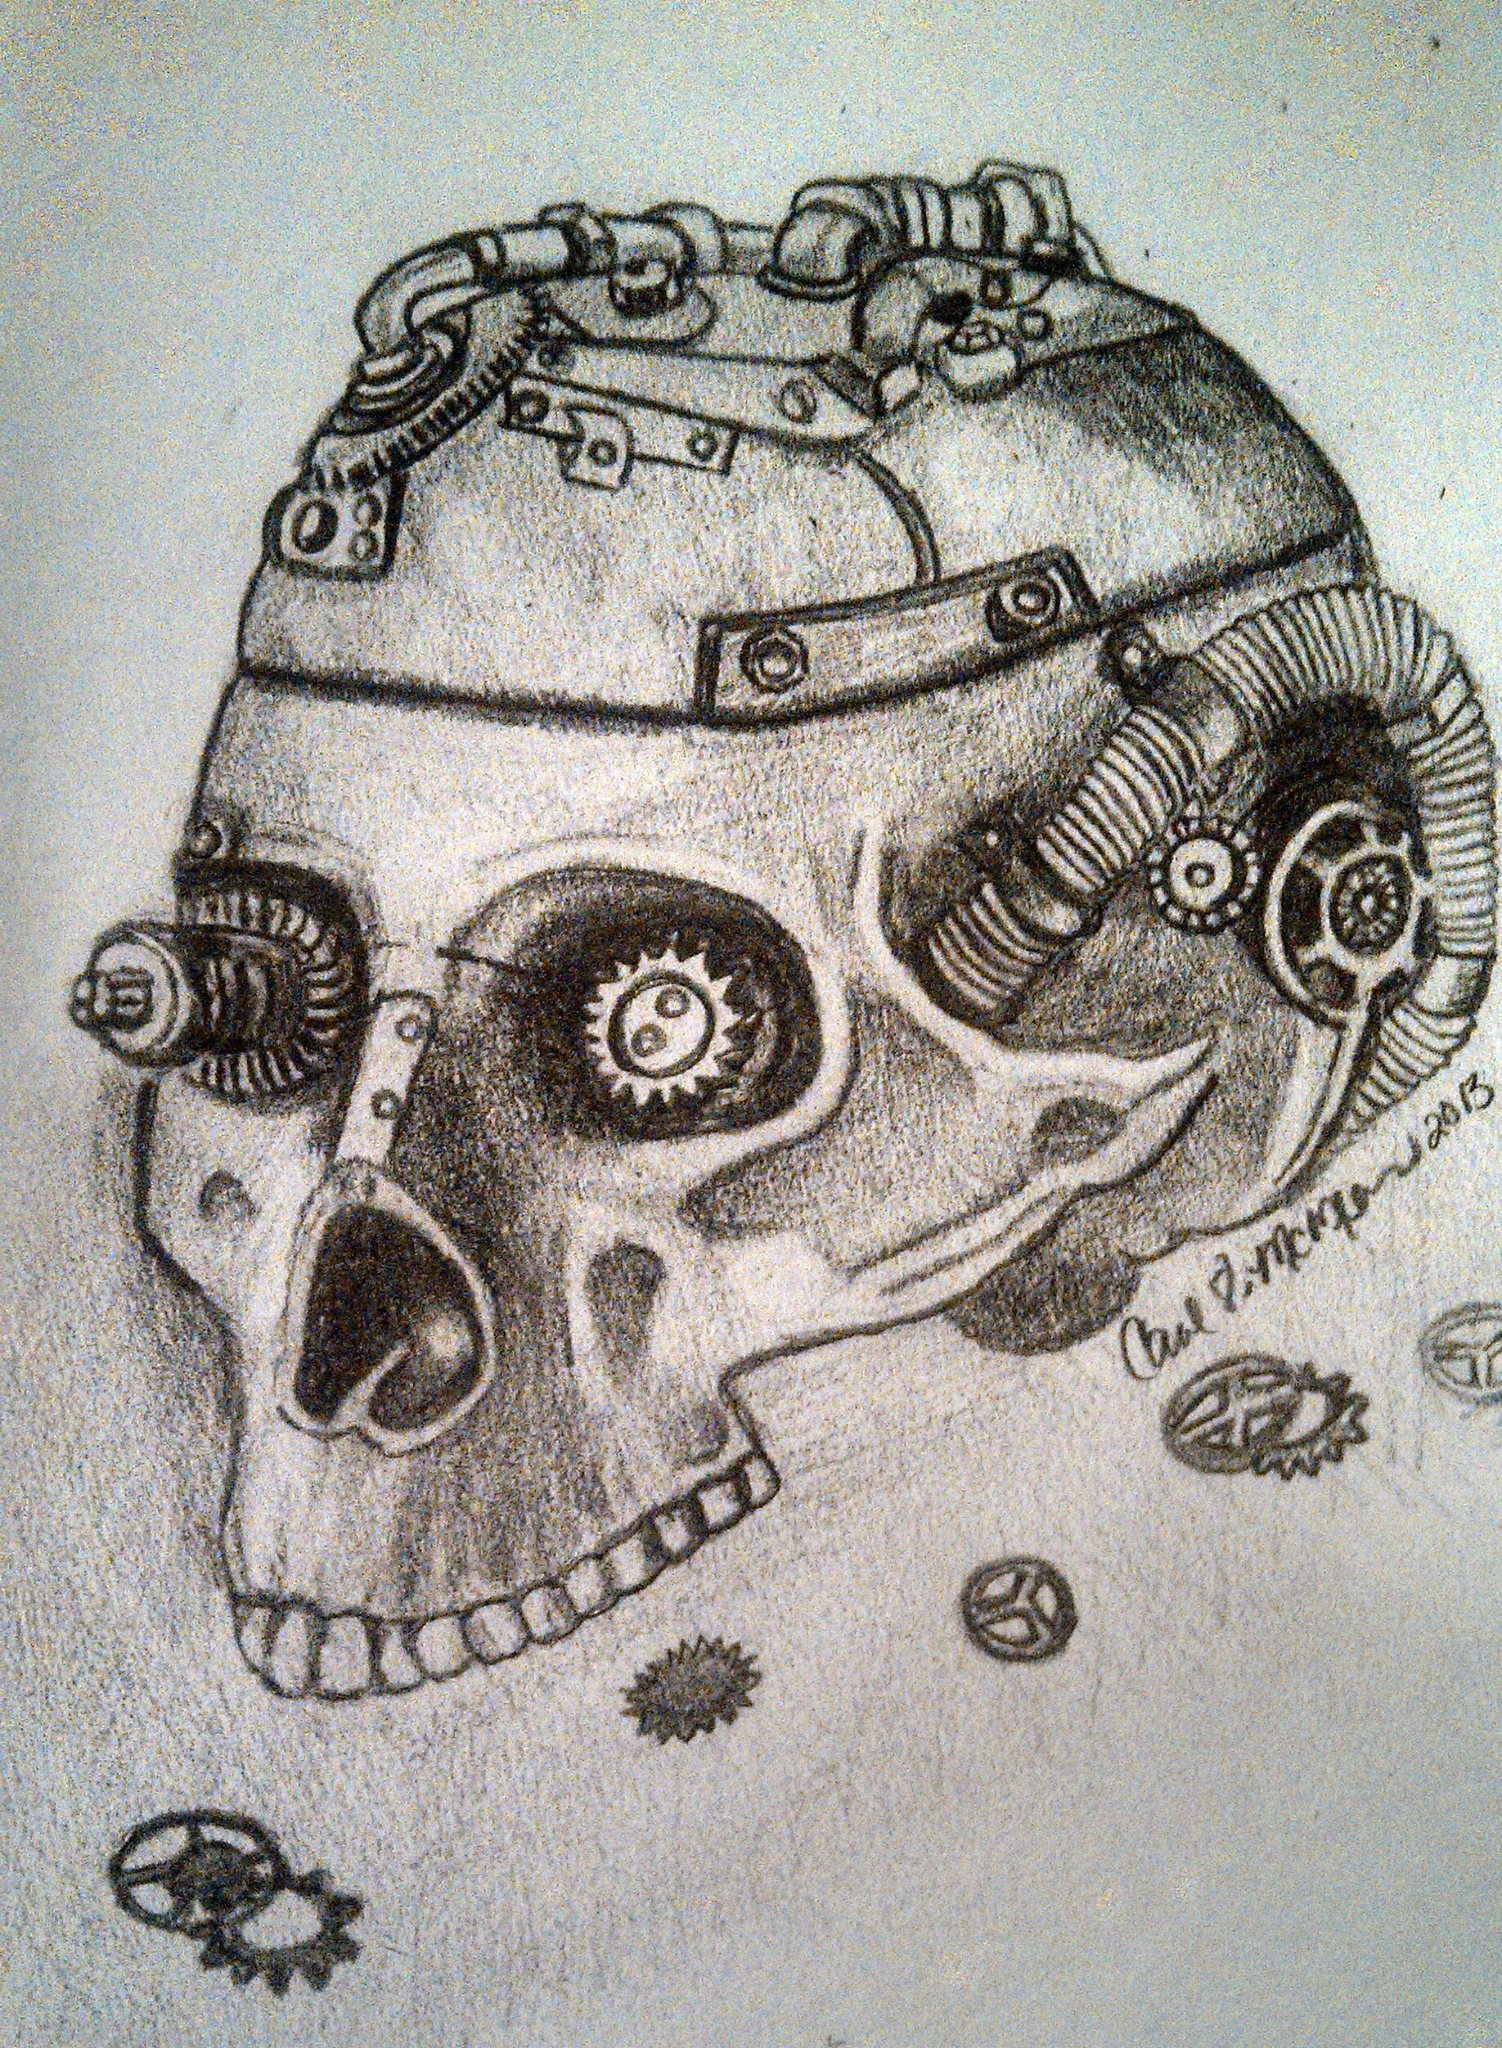 Drawn skull steampunk By Steampunk Skull ravencolored Steampunk